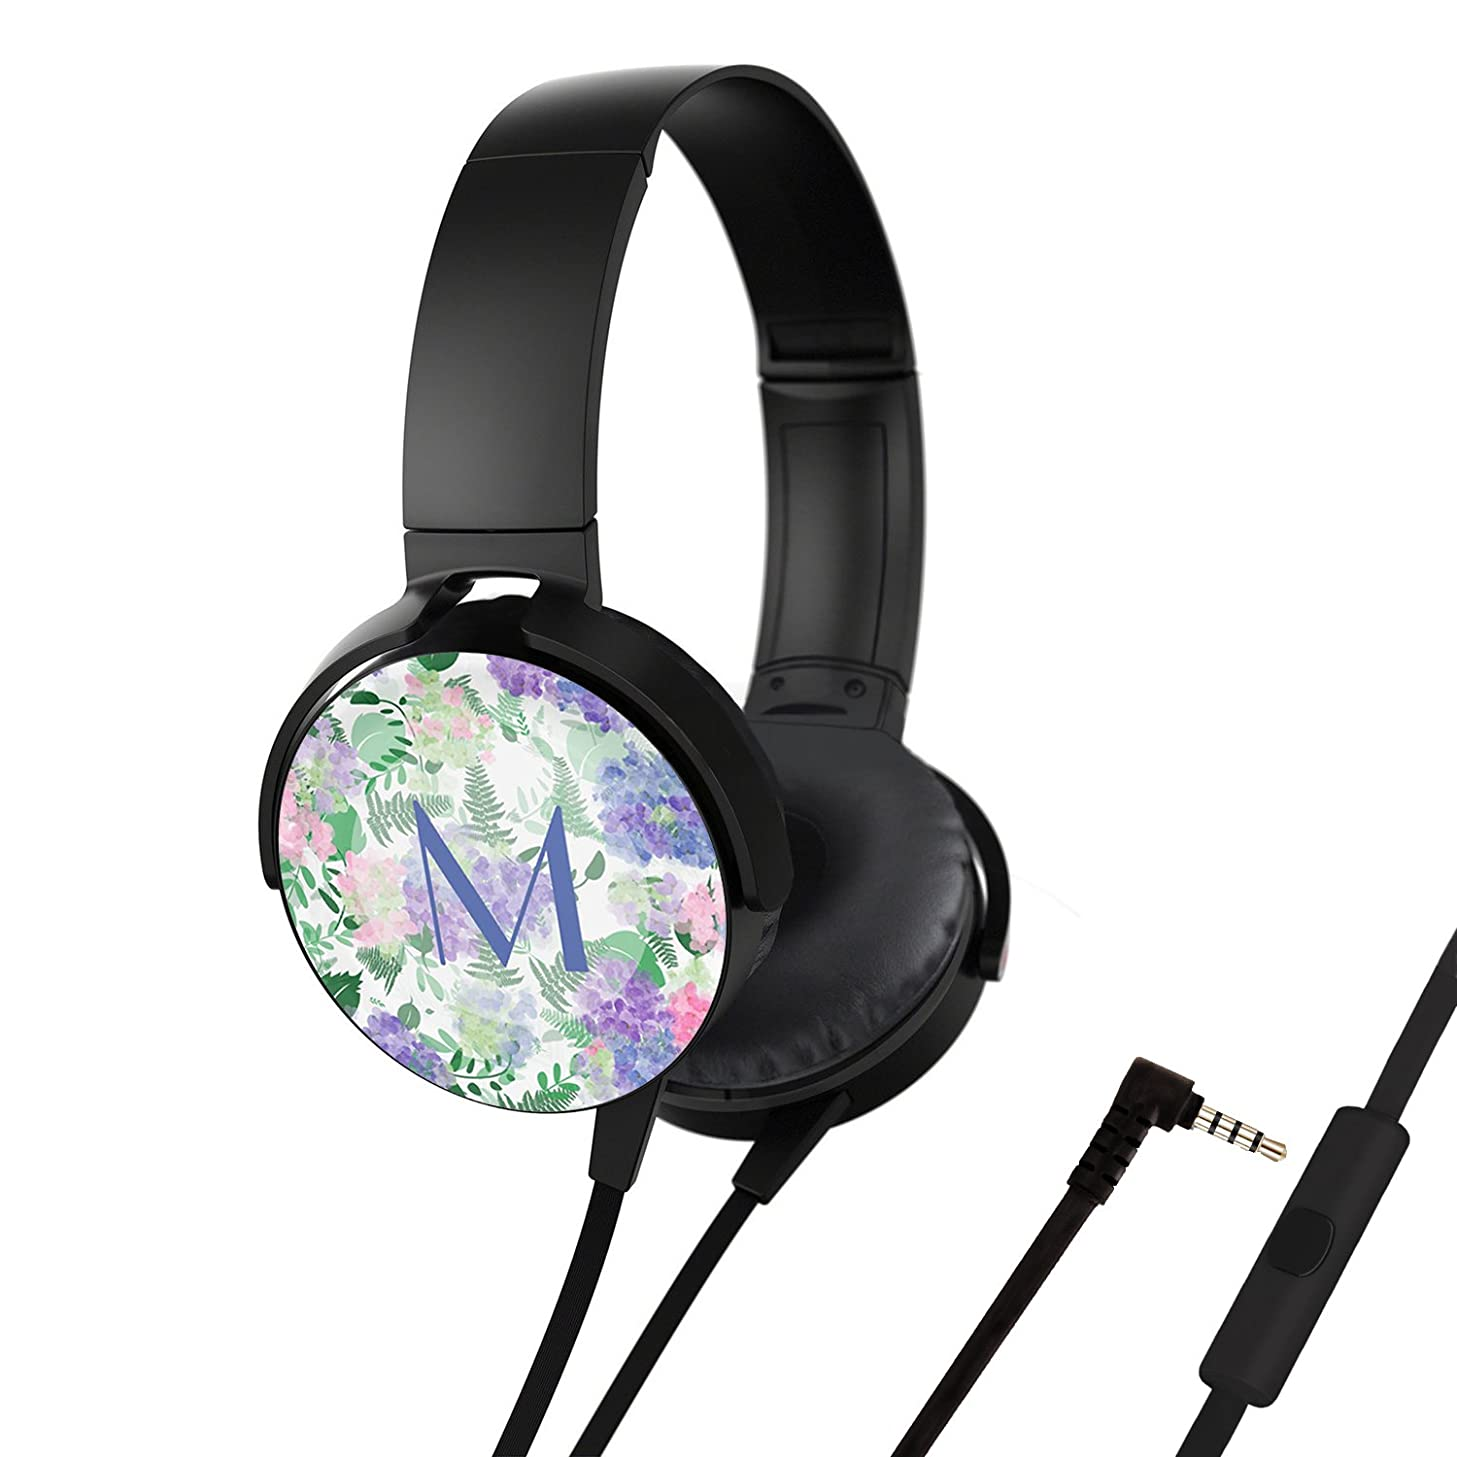 Headsets, On - Ear Stereo Customized Headphones [Free-Hands Call], Portable Headphones with Mic Soft Ear Cushion for Smartphones, iPhone, iPad, Laptop, Computers - Beautiful Watercolor Hydrangea